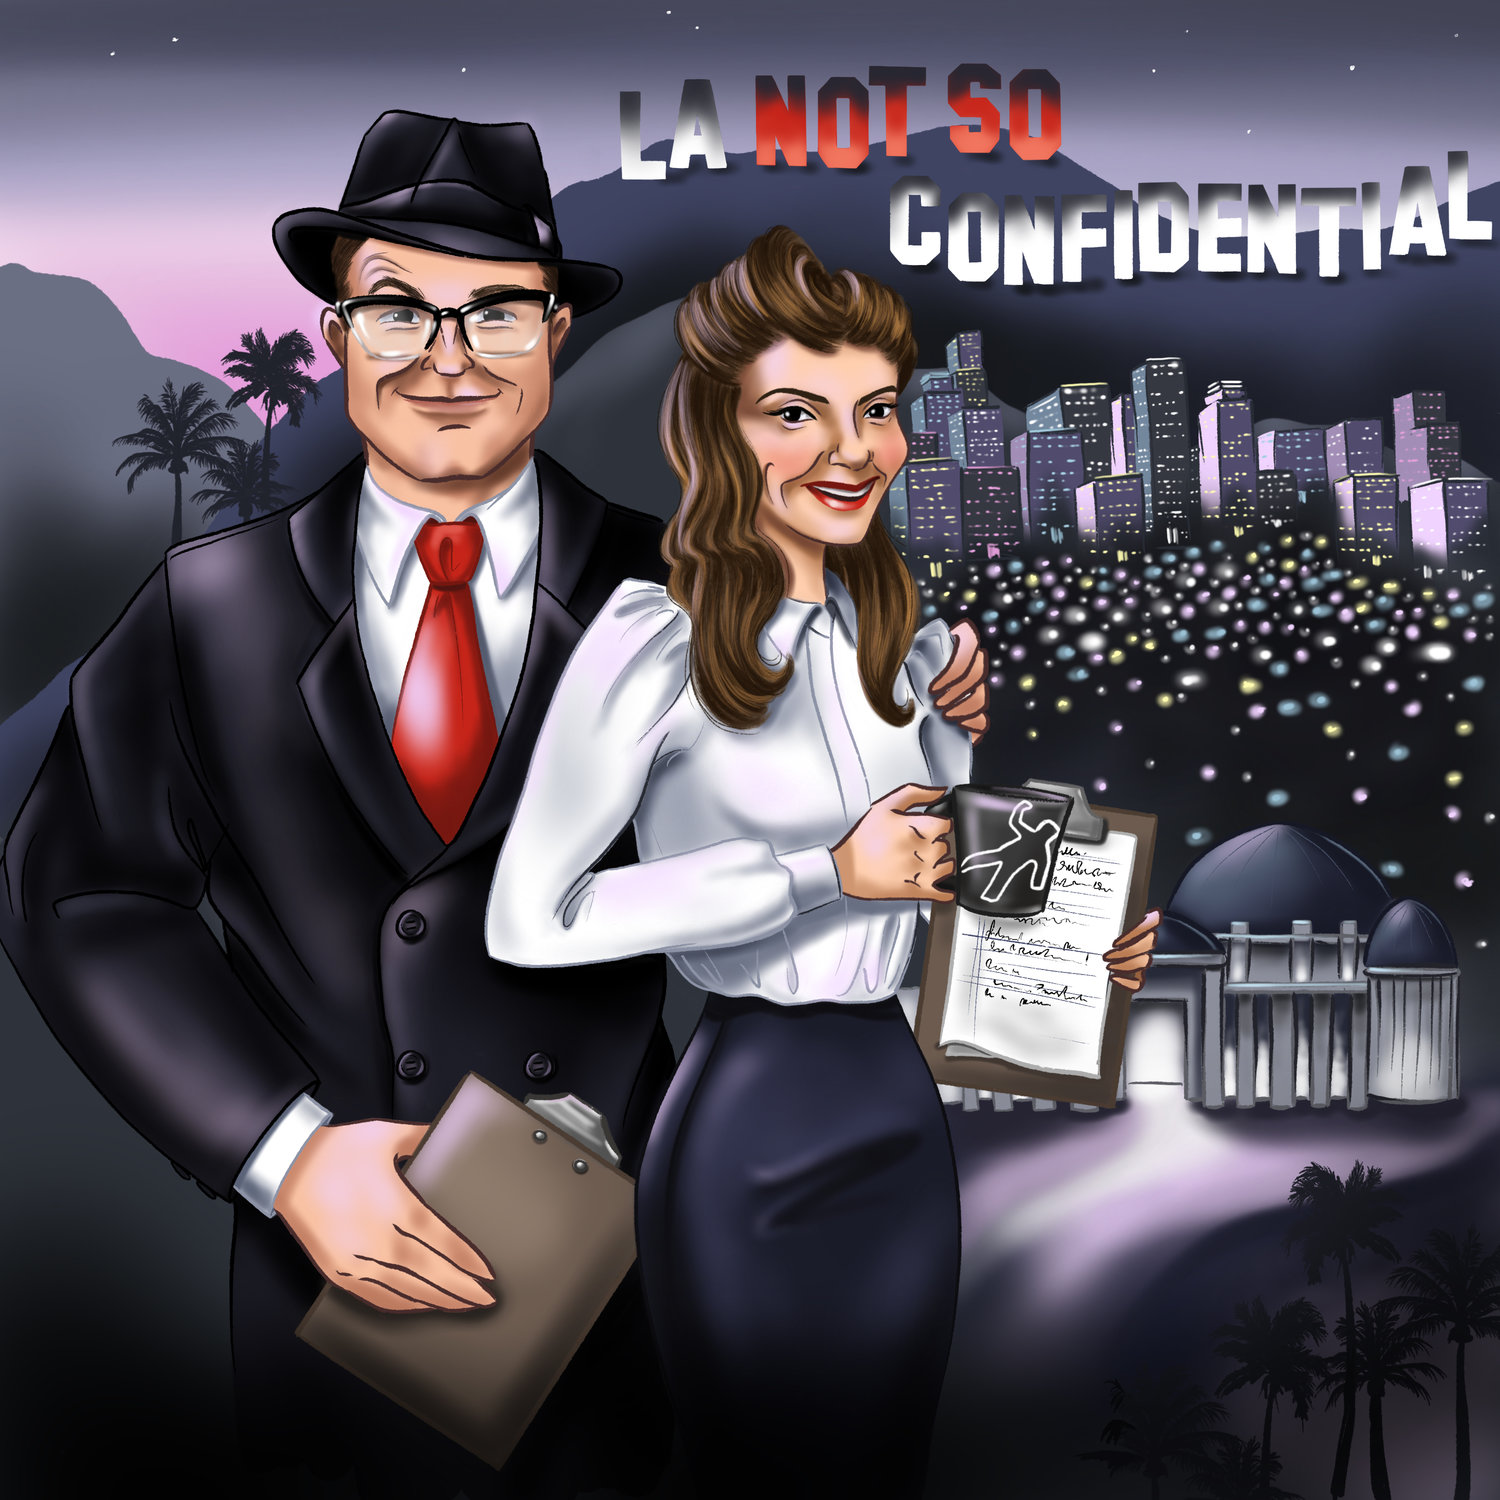 LA NOT SO CONFIDENTIAL